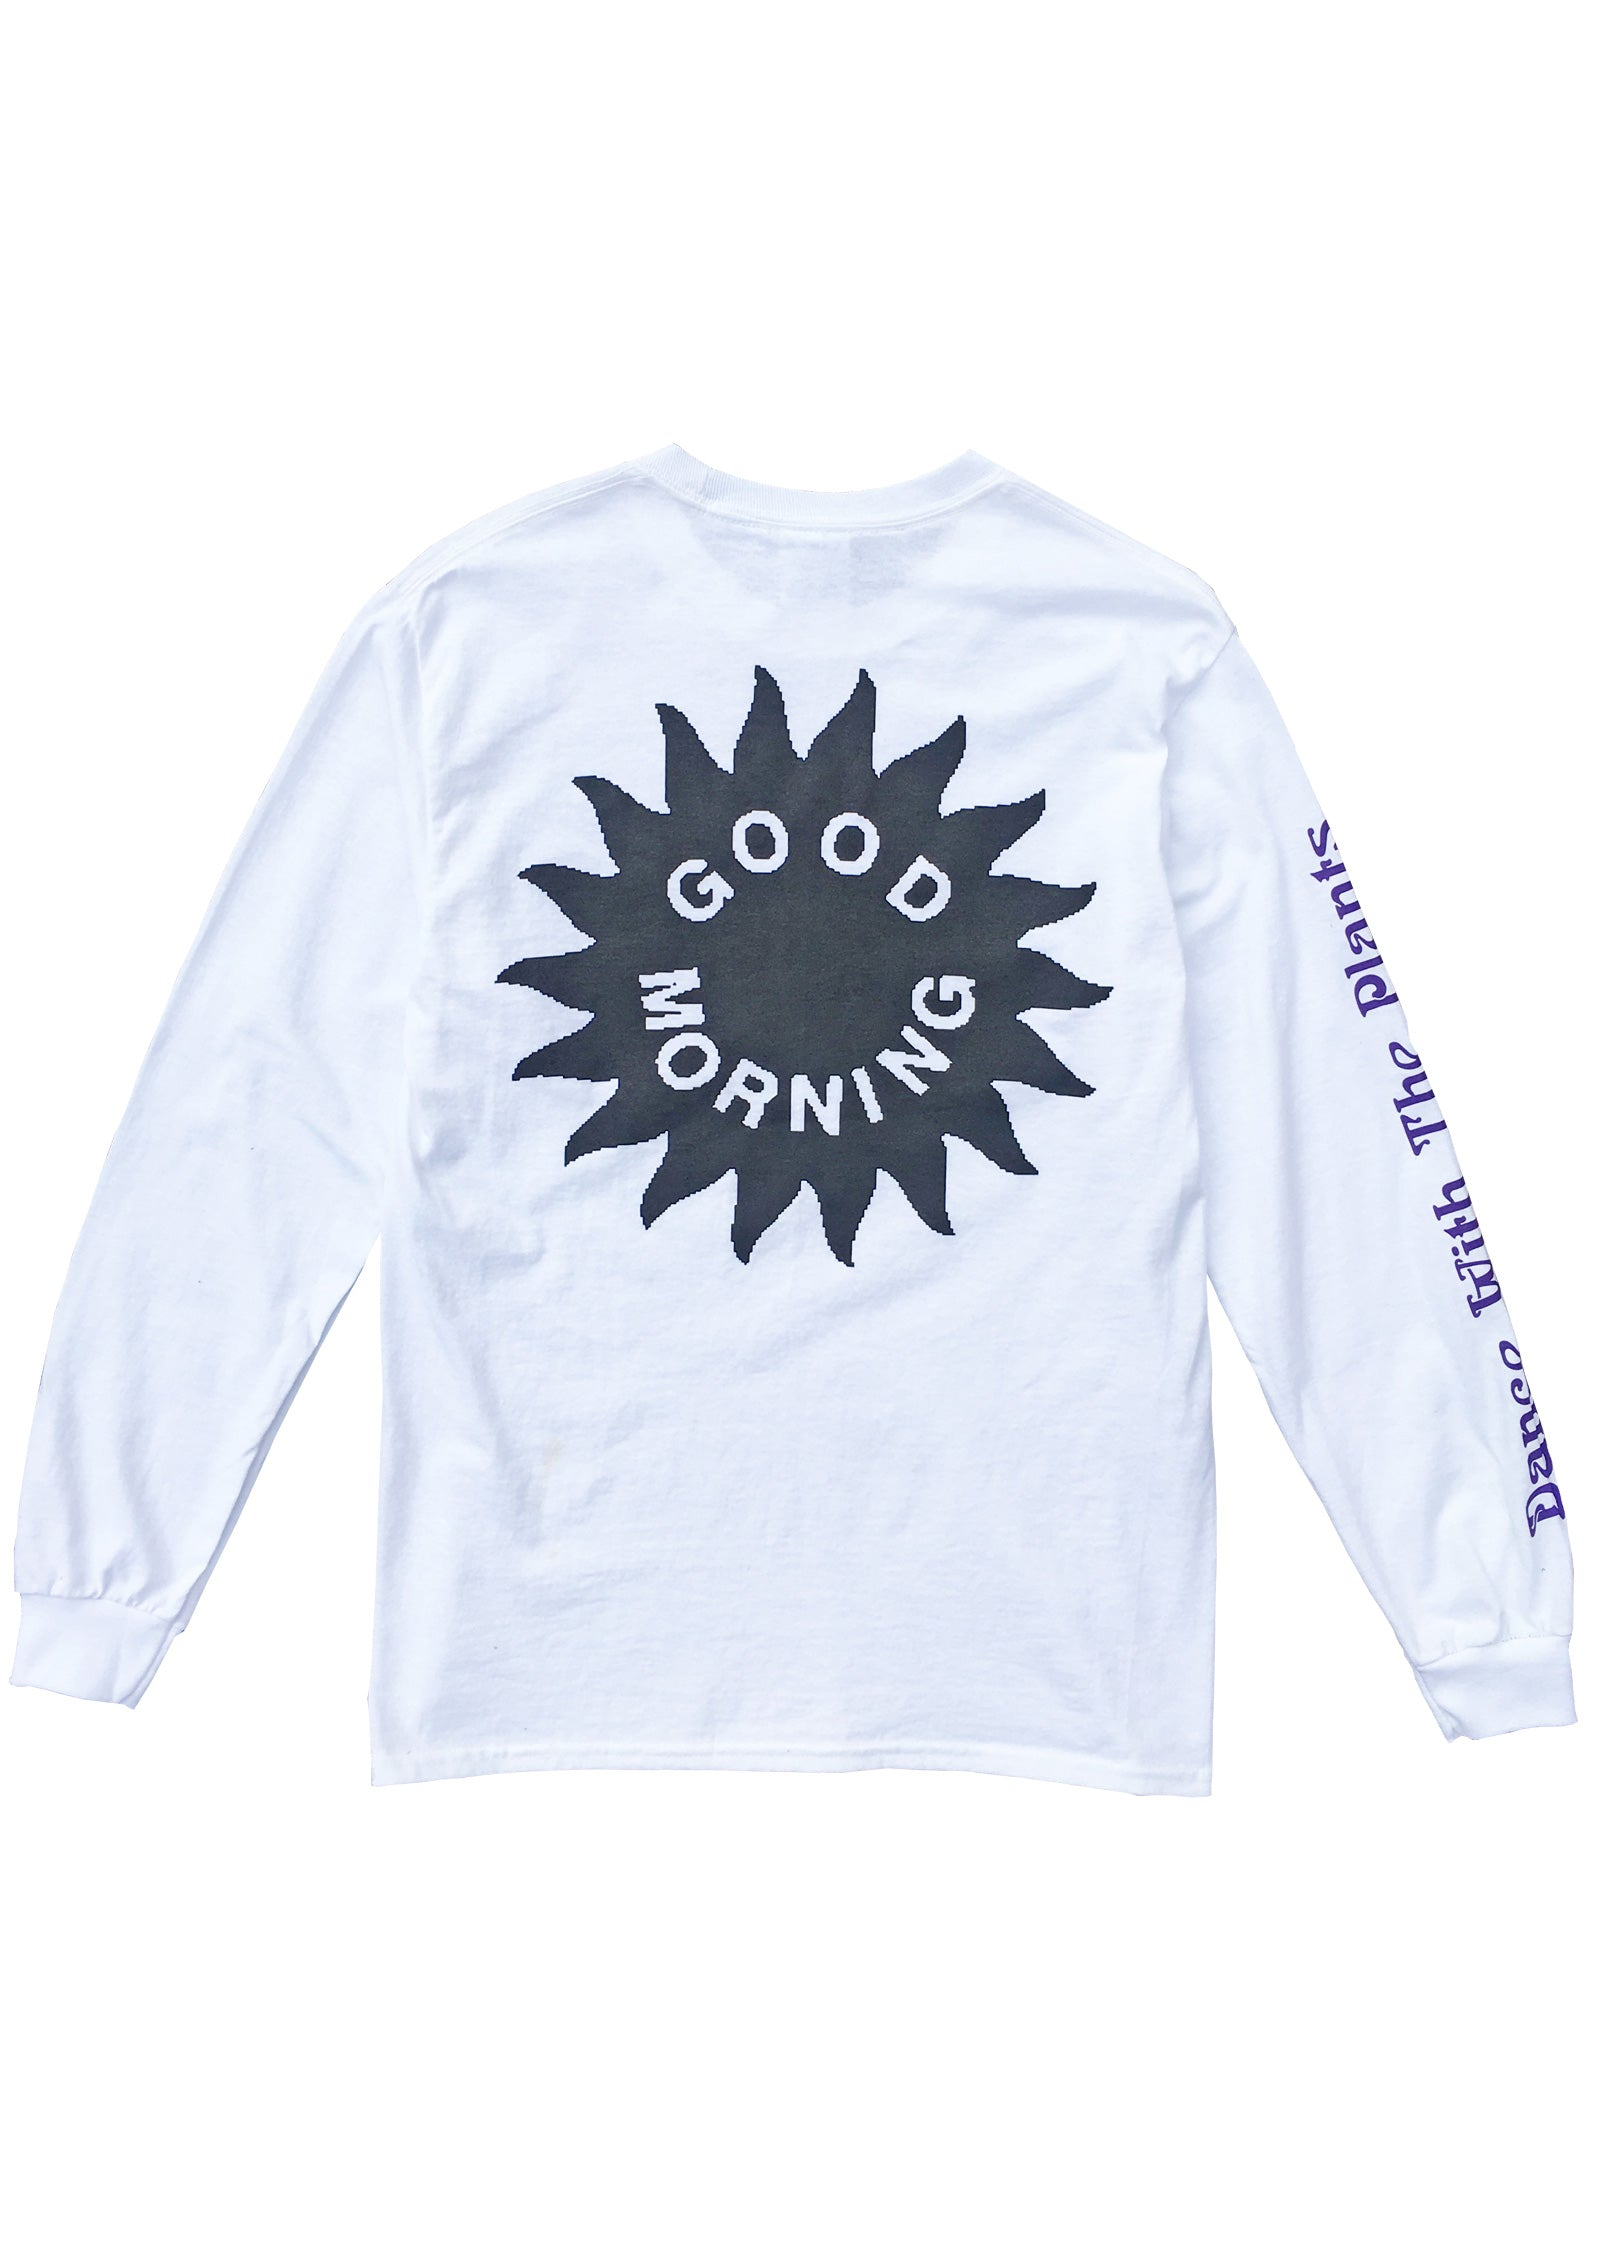 DANCE WITH THE PLANTS OG LS TEE - WHITE